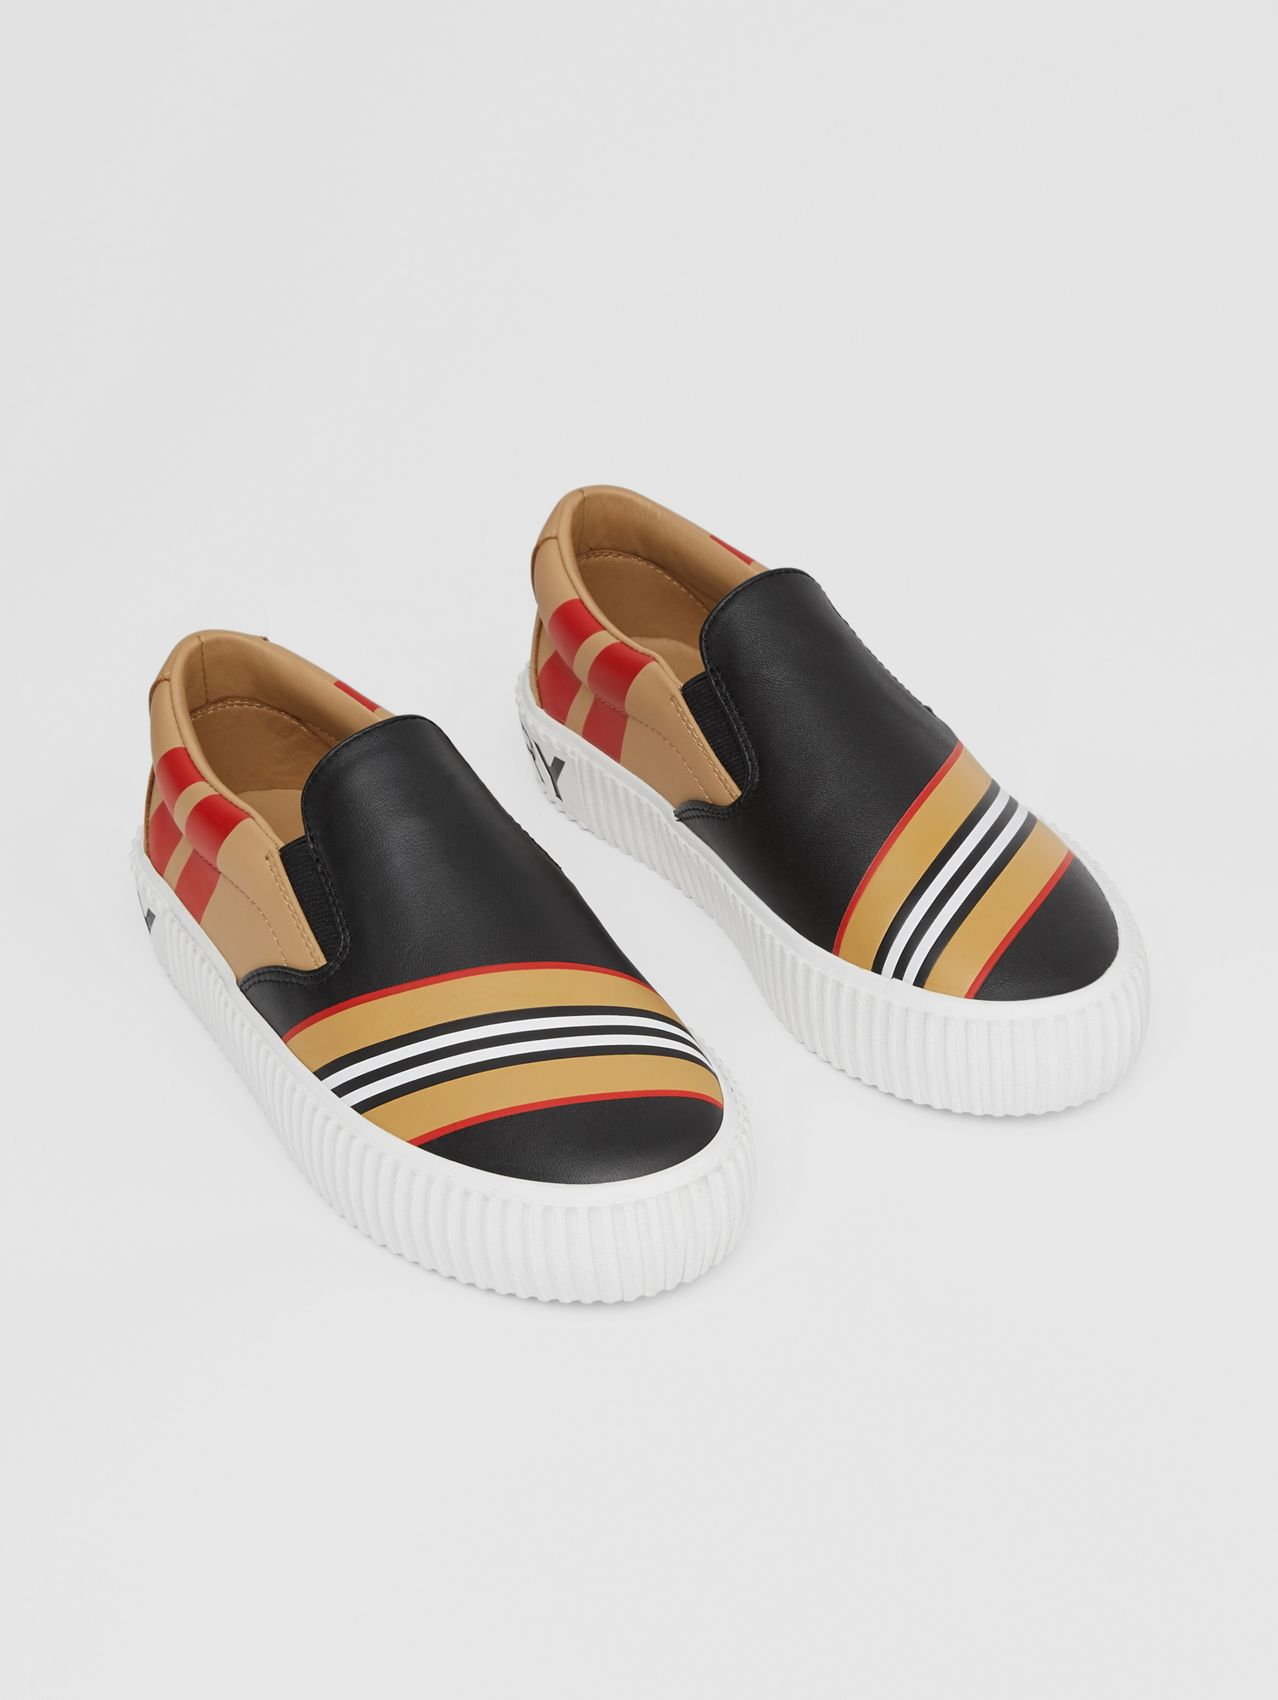 Icon Stripe Print Leather Slip-on Sneakers in Black